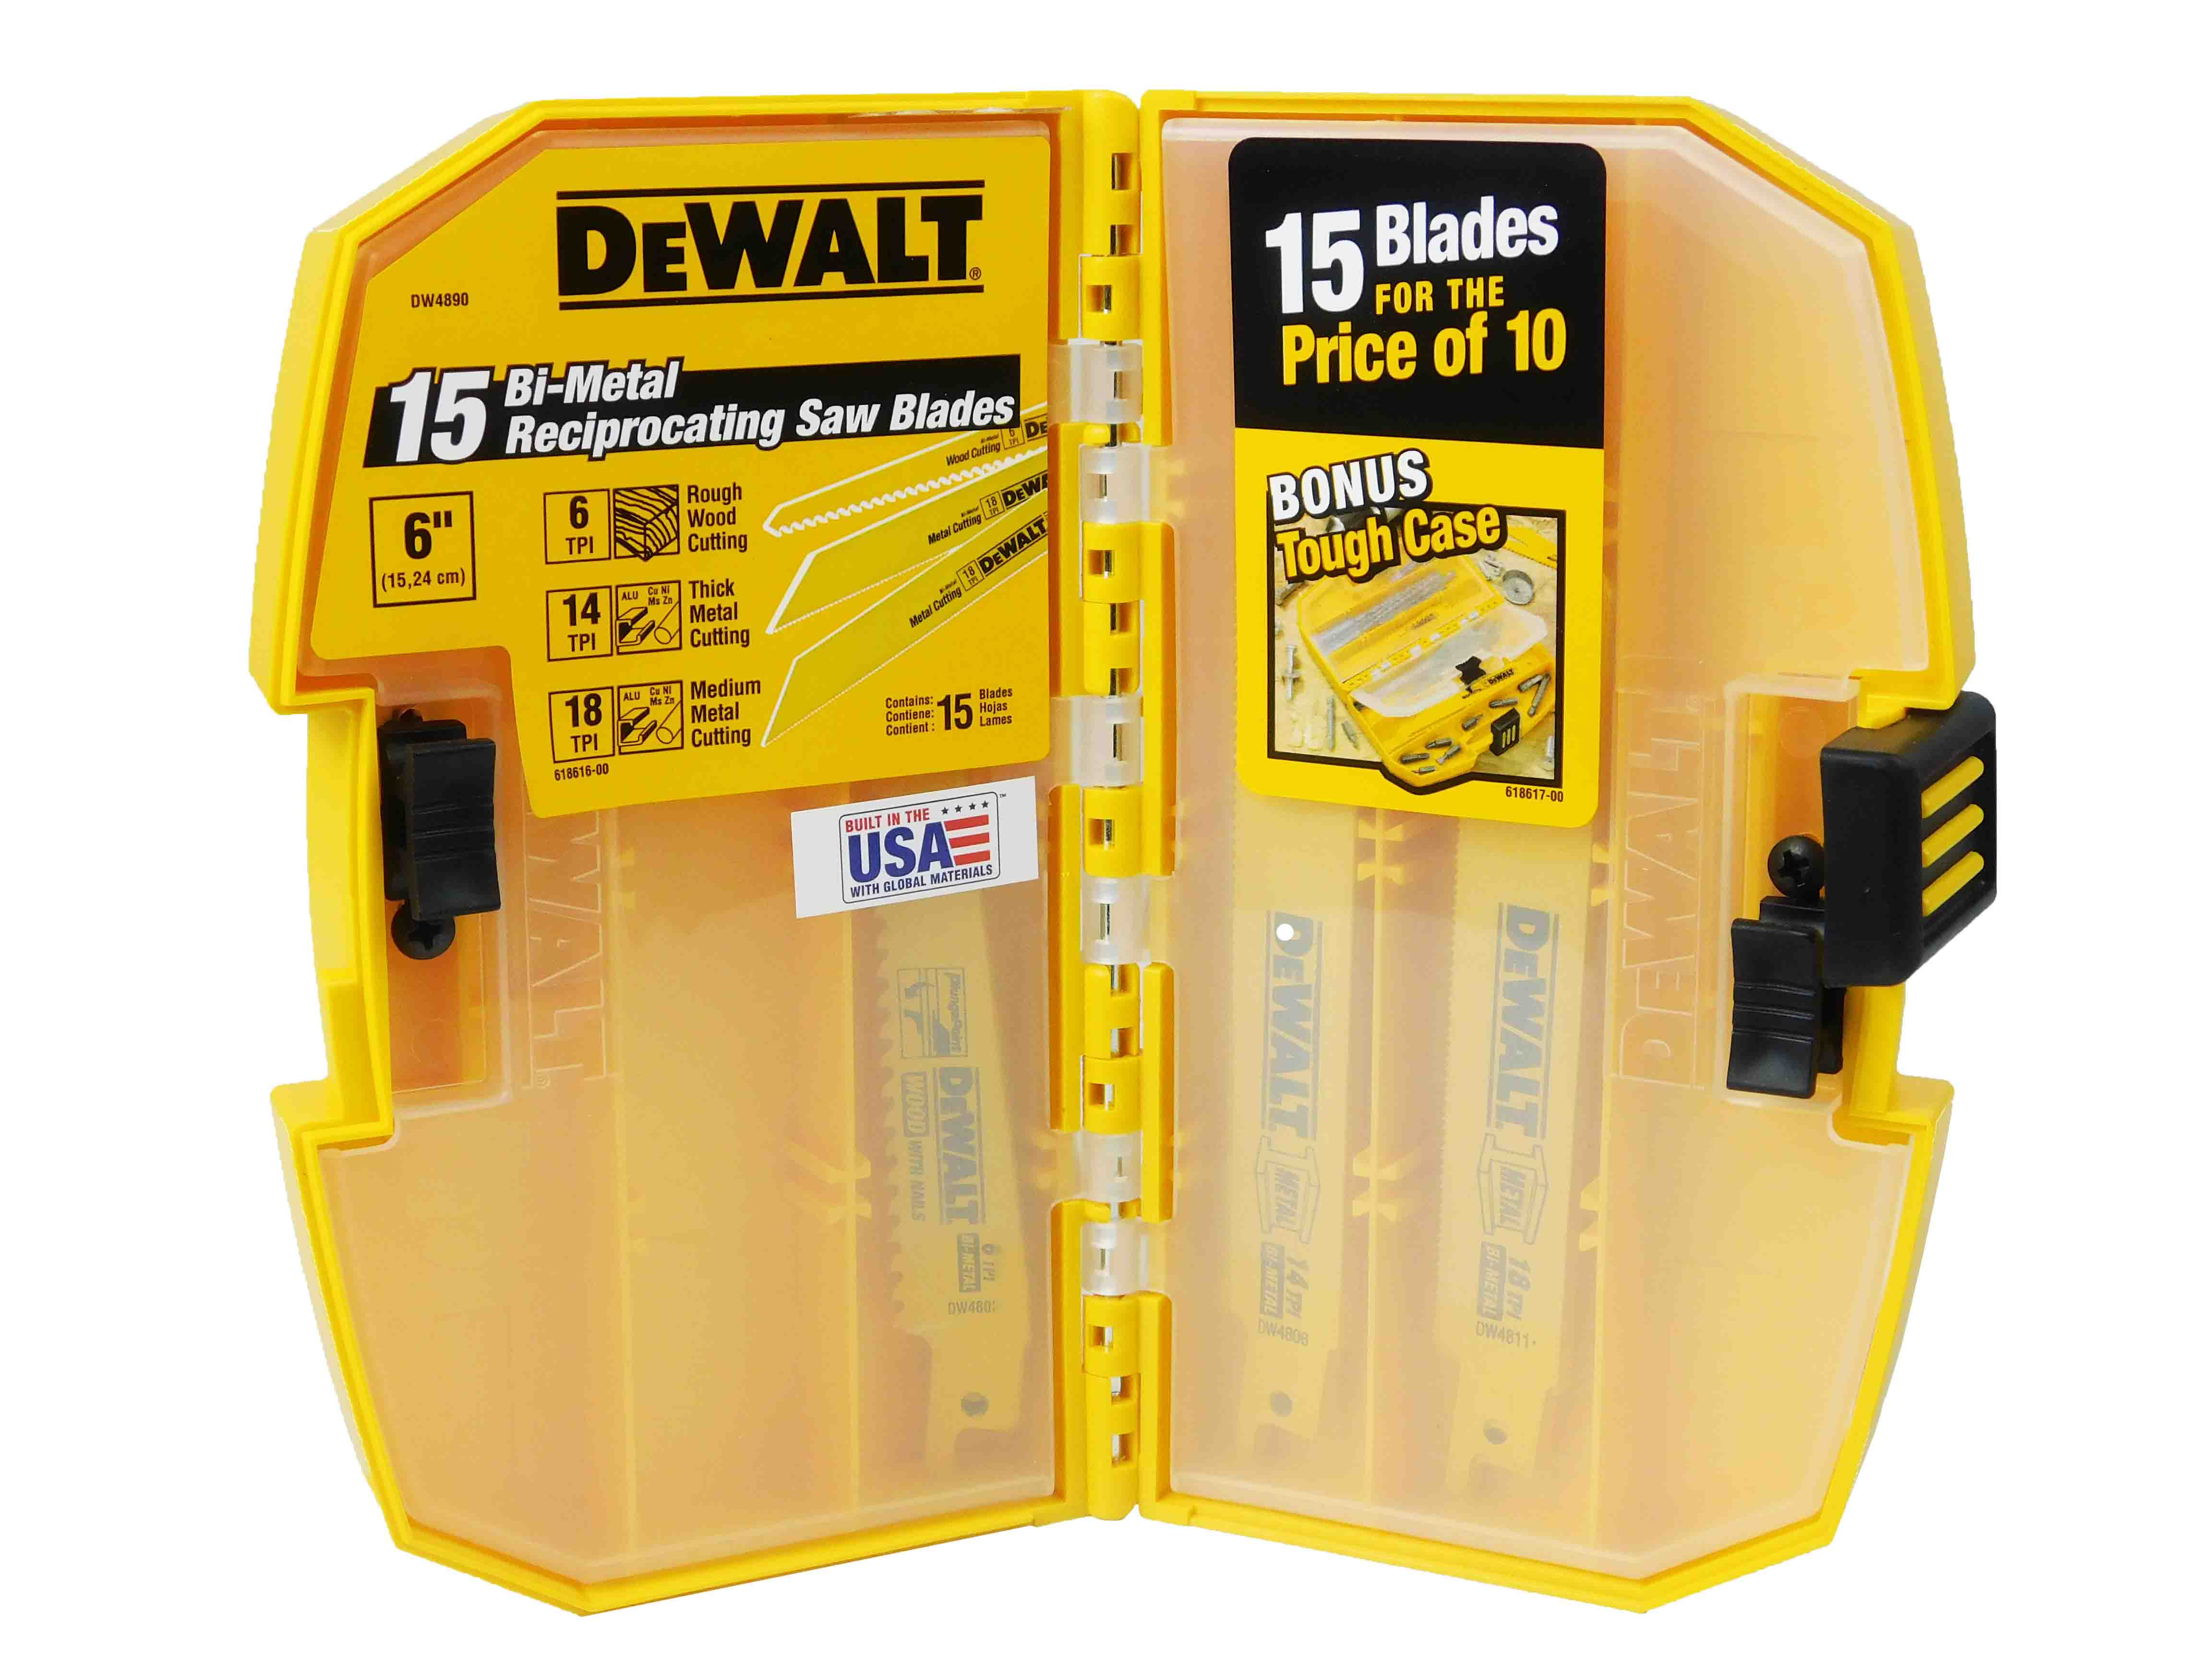 Dewalt-DCS381B-20VReciprocating-Saw-DW4890-15Pc-Reciprocating-Blades-image-2